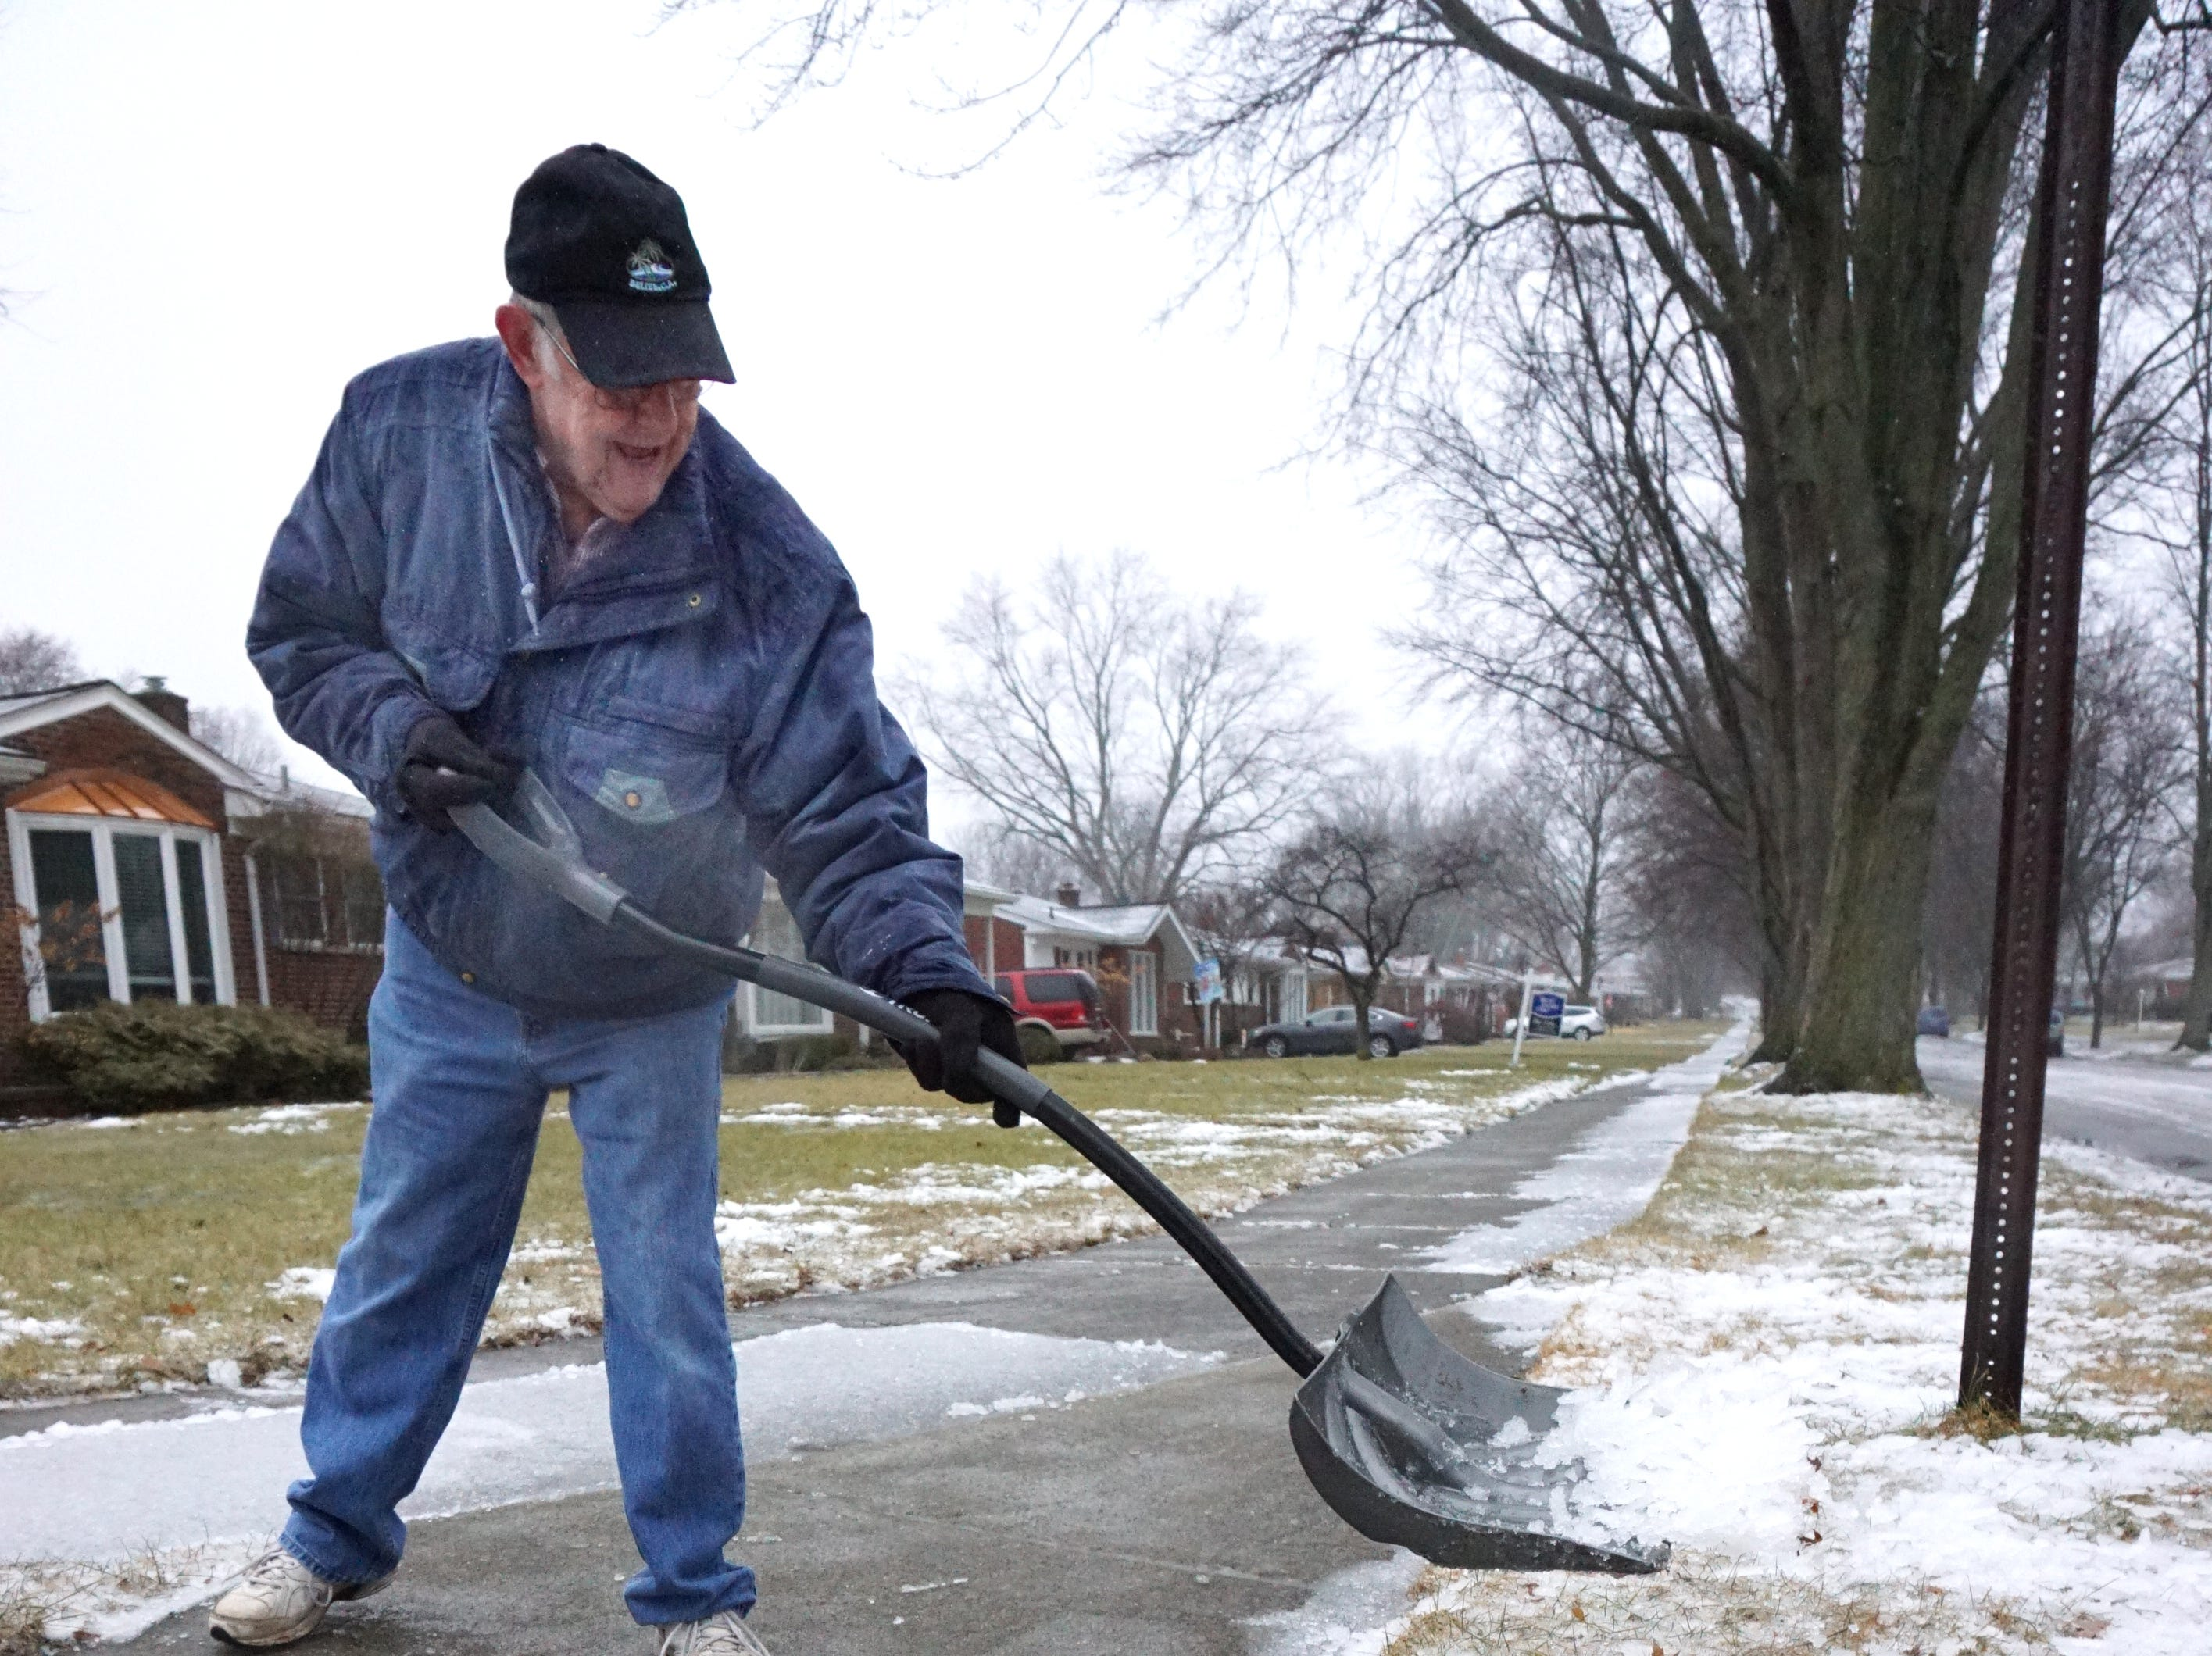 84 year-old Farmington Hills resident Bill Matheny tosses some icy mixture off his Frederick Street home on Wednesday afternoon. Matheny said he comes out for a bit, does some shoveling and then goes back inside for a rest.